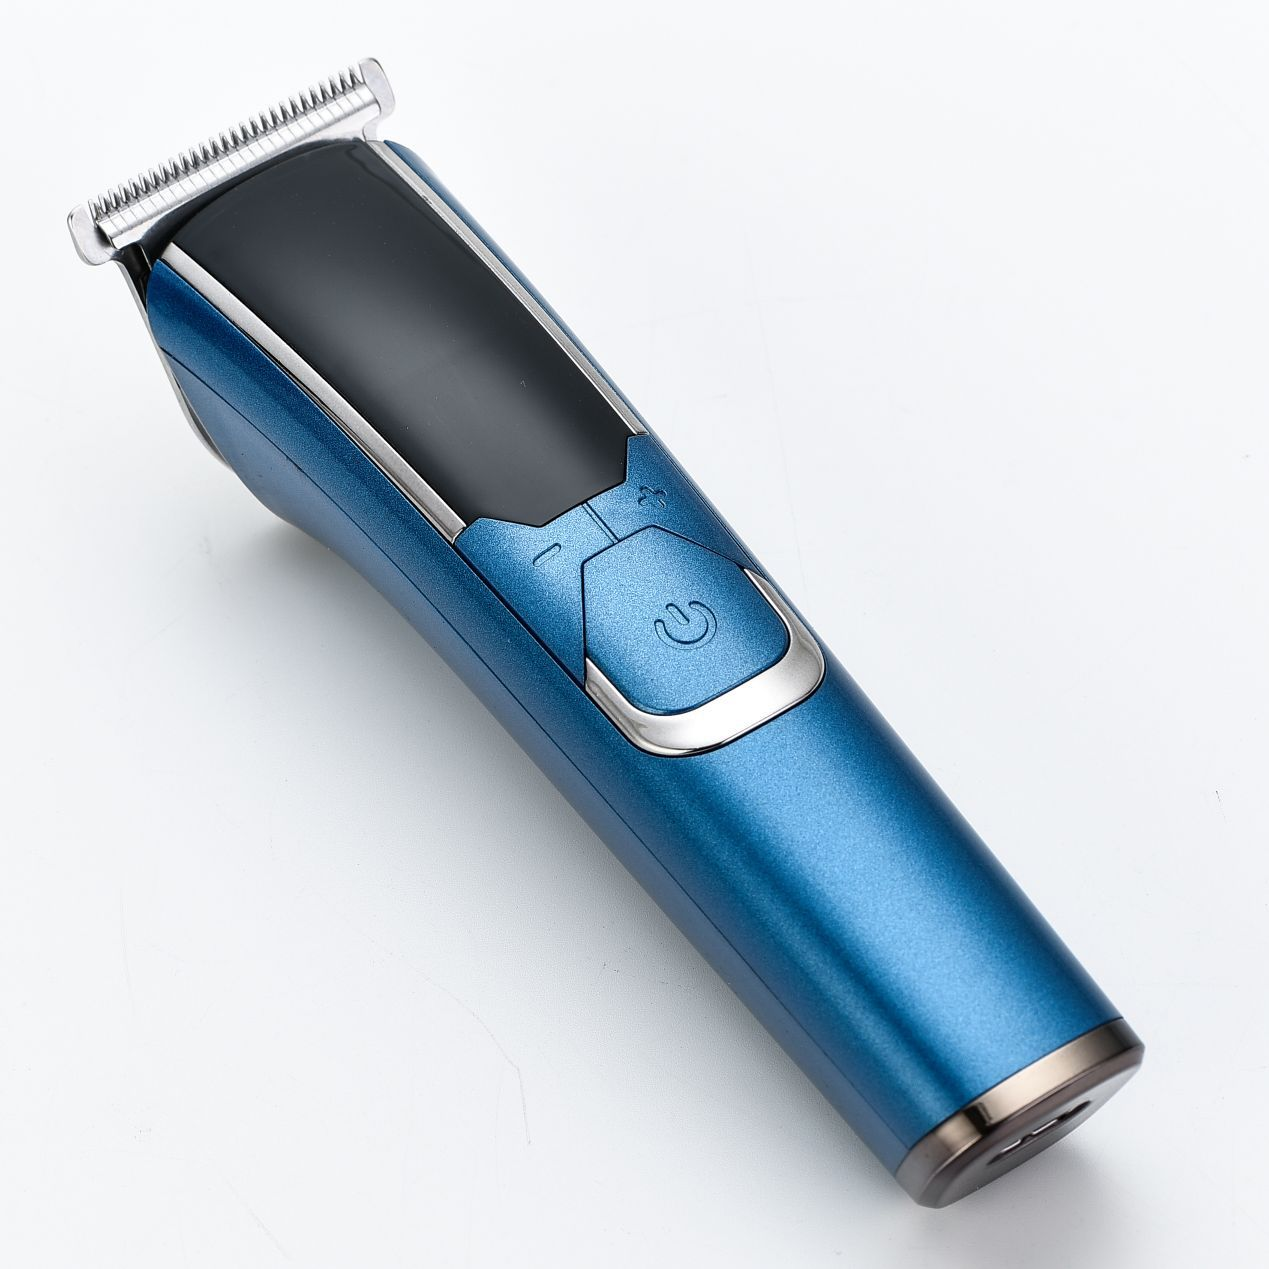 Hair Trimmer For Men Rechargeable Professional Hair Cut Machine Buy Hair Clippers for Men T Blade enlarge